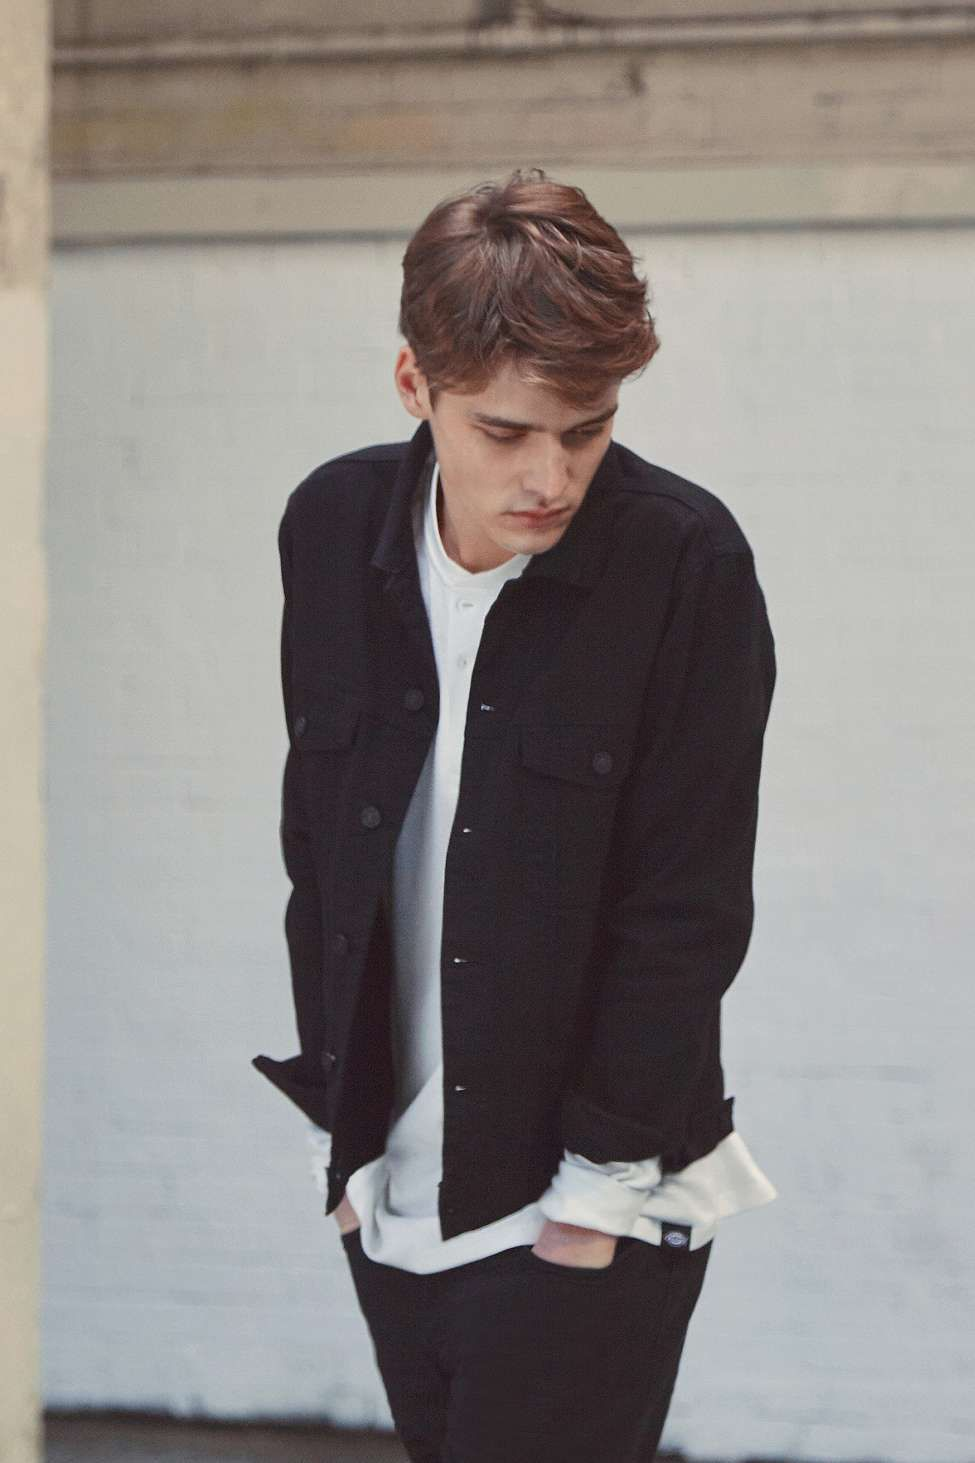 Loom Black Denim Jacket Black Denim Jacket Black Denim Jacket Outfit Smart Casual Style